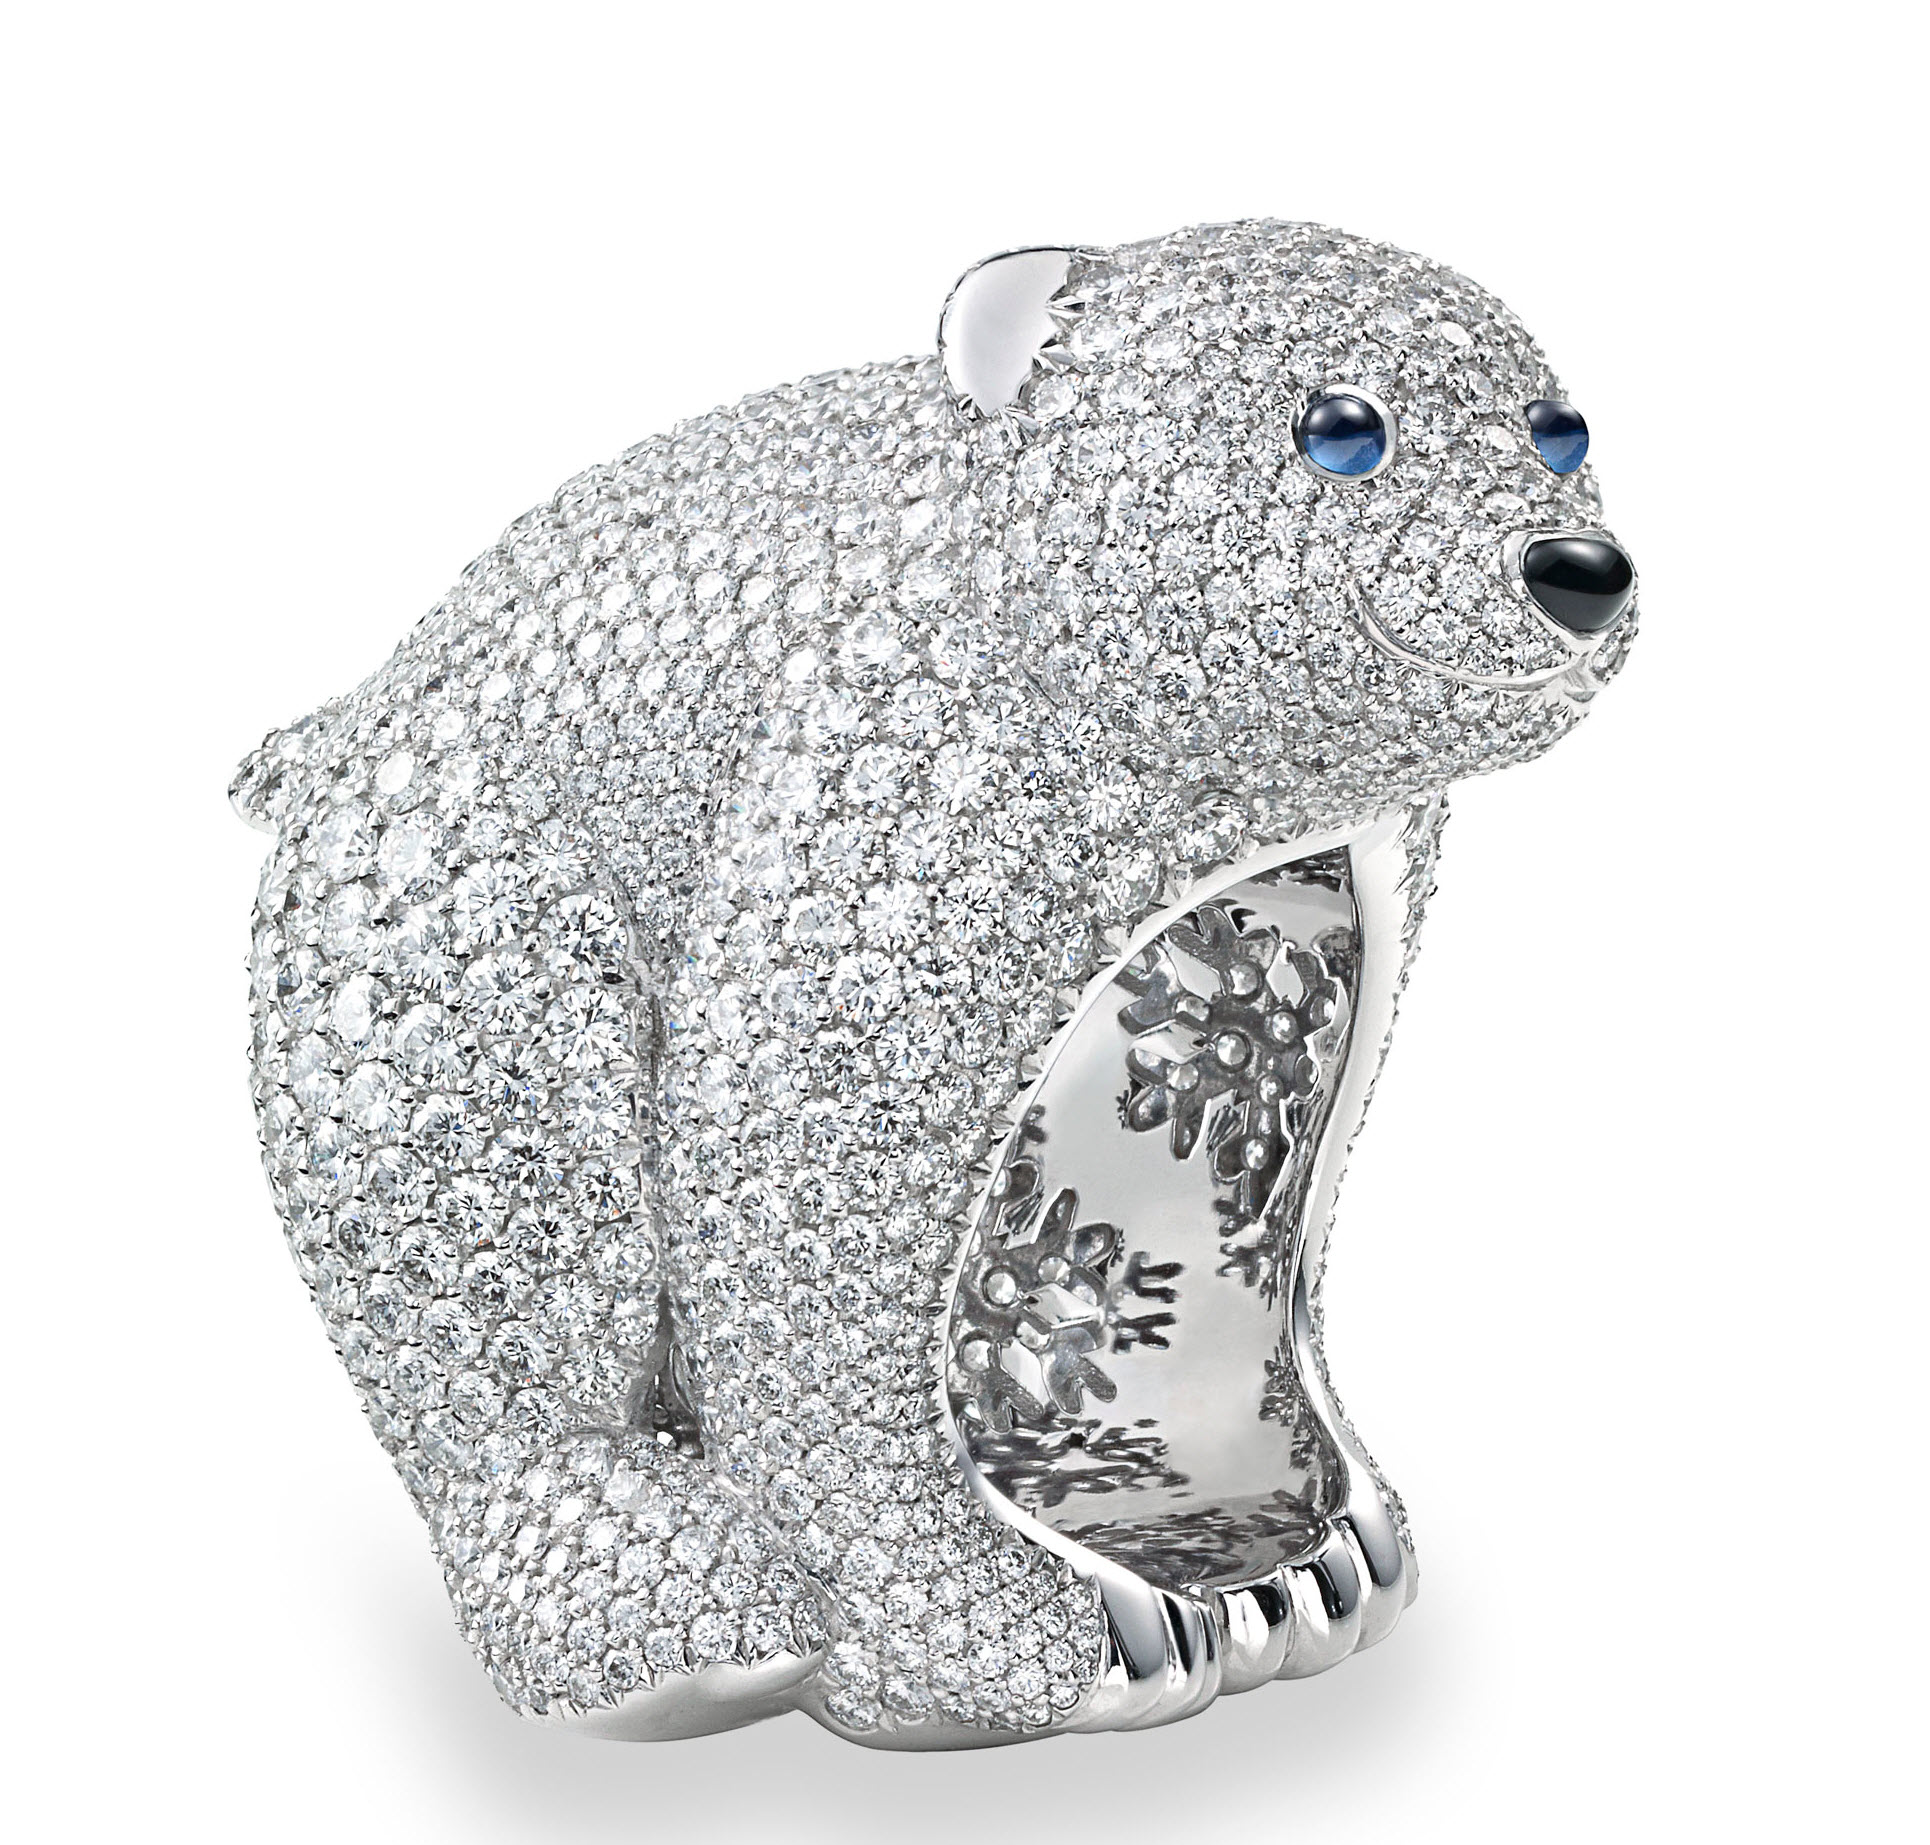 Bear In Hing Reng 2: Polar Bear Ring By Chopard